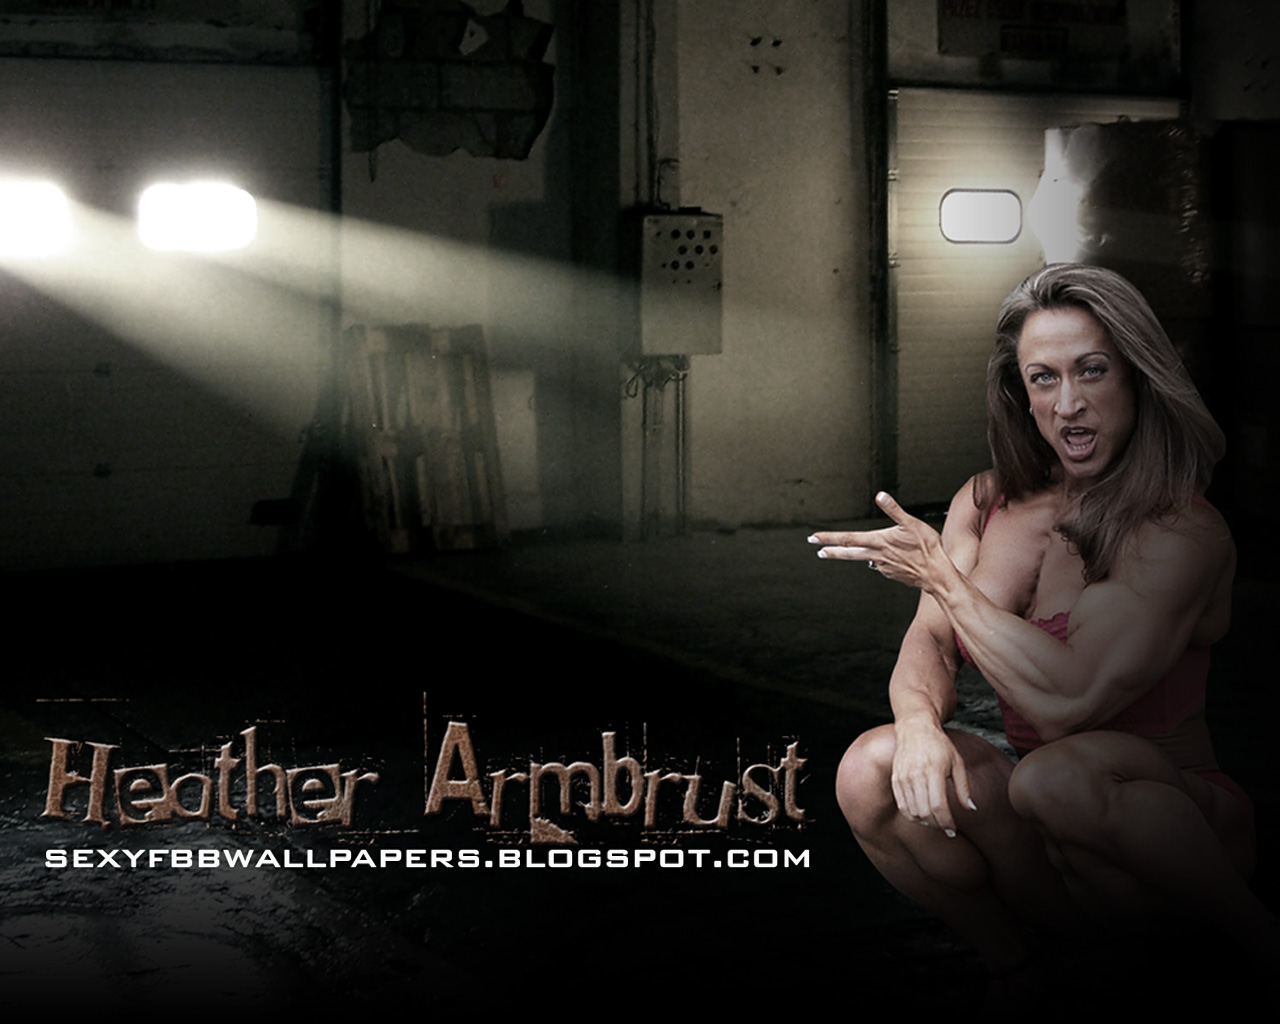 IFBB Pro Heather Armbrust - FBB Wallpapers